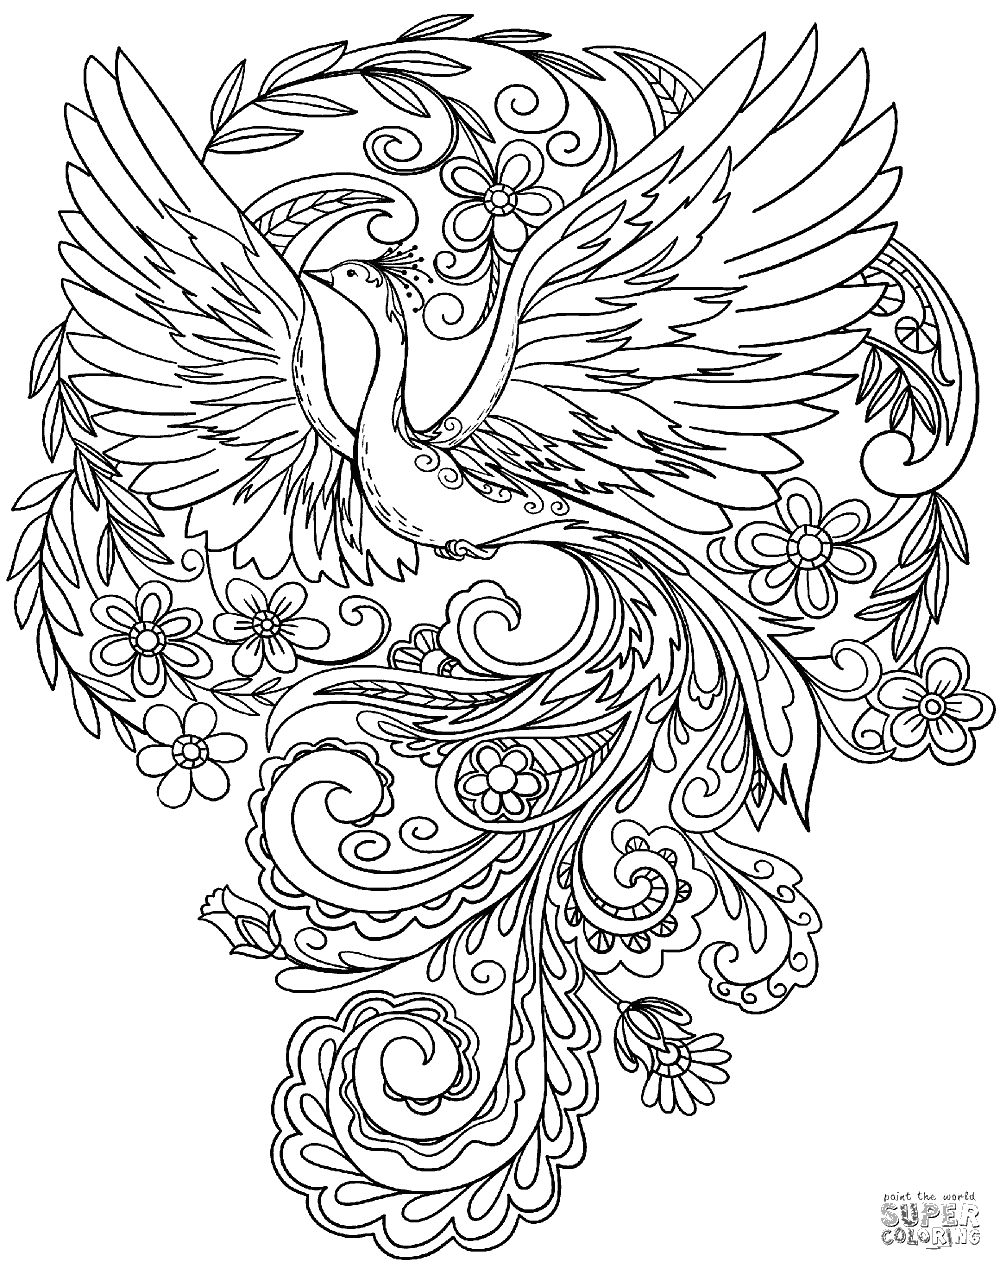 peacock pictures for colouring peacock drawing to color coloringrocks pictures for colouring peacock